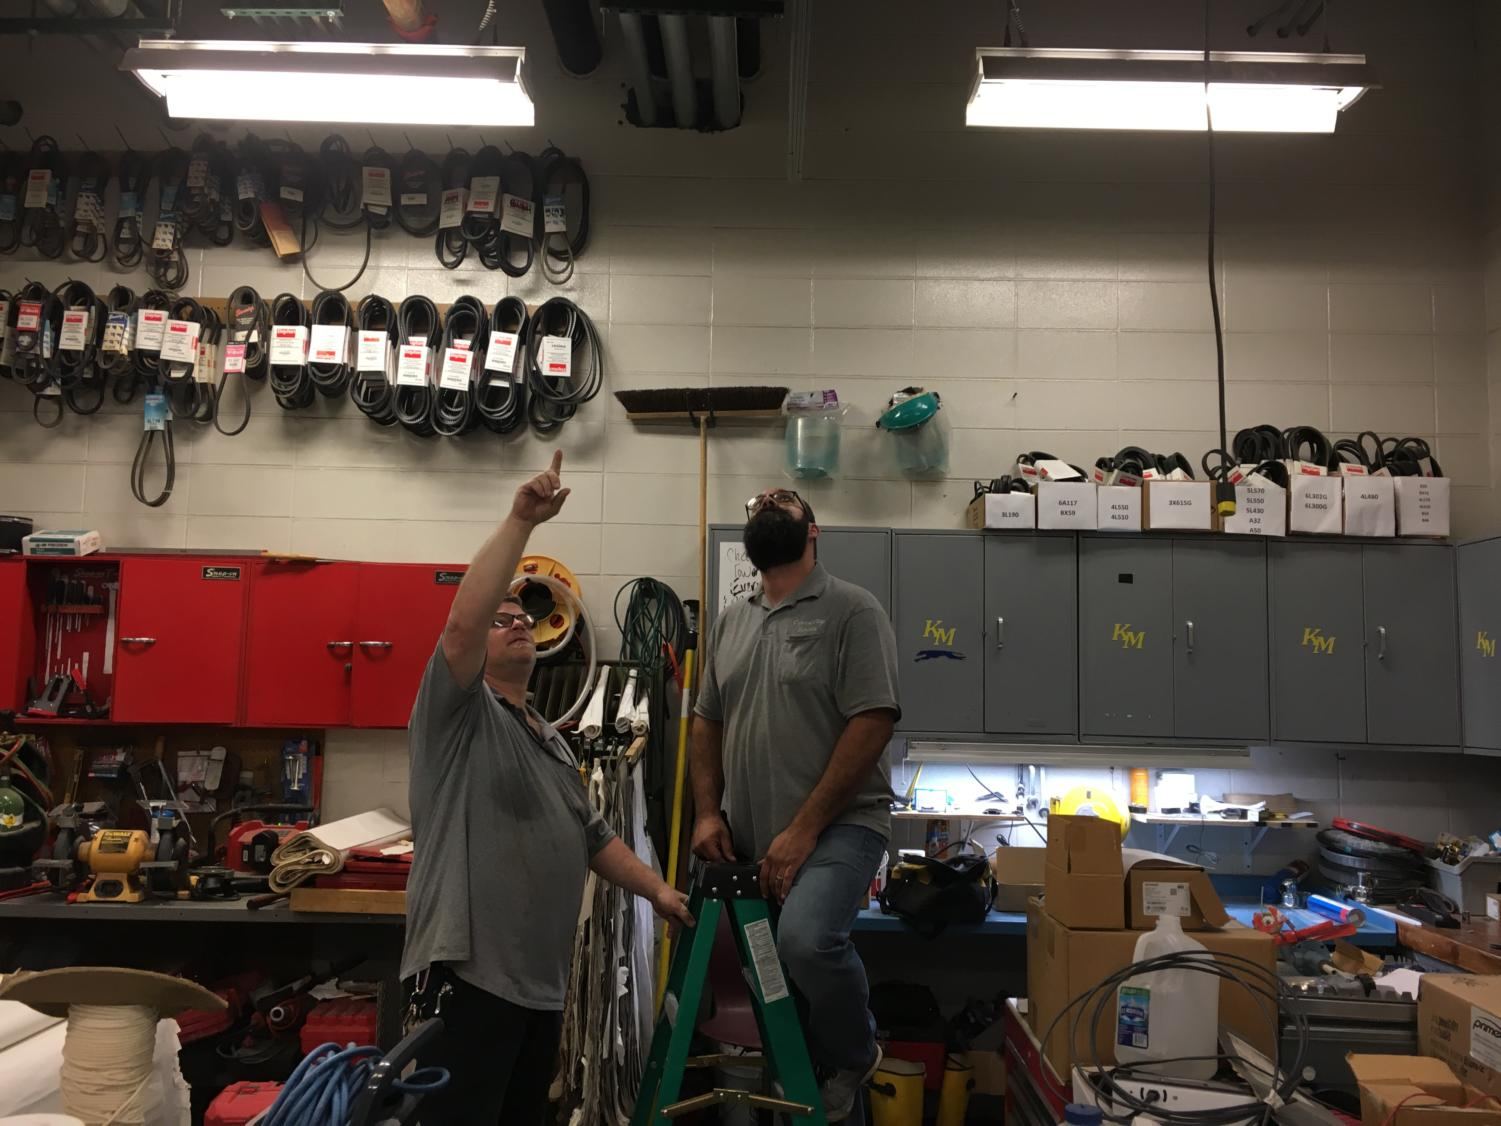 Maintenance worker Fred Napier holds the ladder for another maintenance worker as they fix a light that has gone out in the maintenance shop. This is the same kind of thing they do when teachers submit work orders.